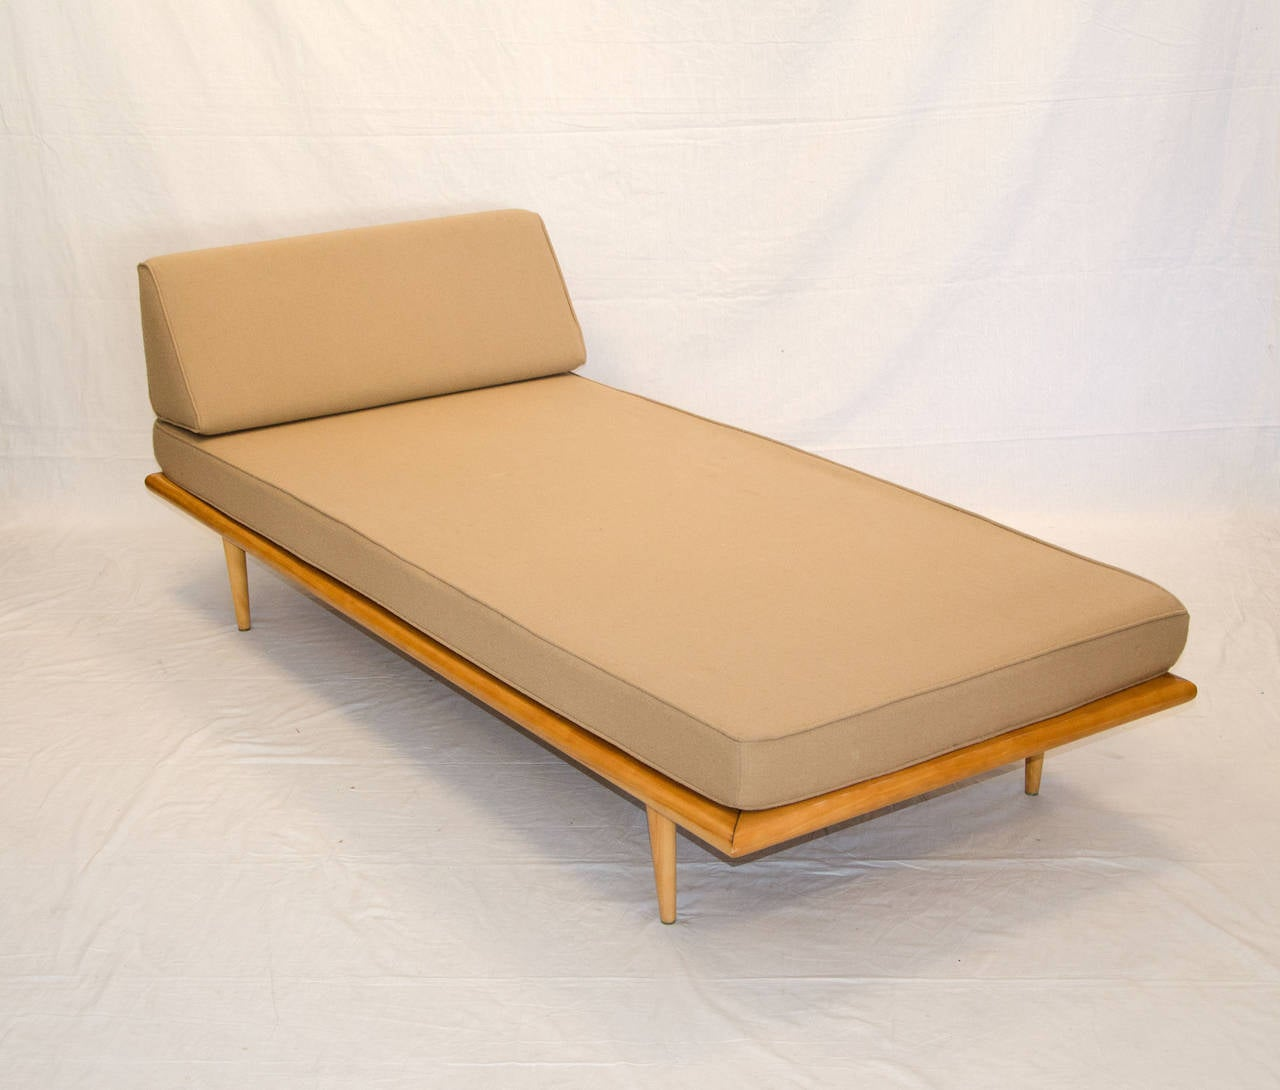 Mid century daybed or chaise longue george nelson for herman miller for sale - Chaise herman miller ...